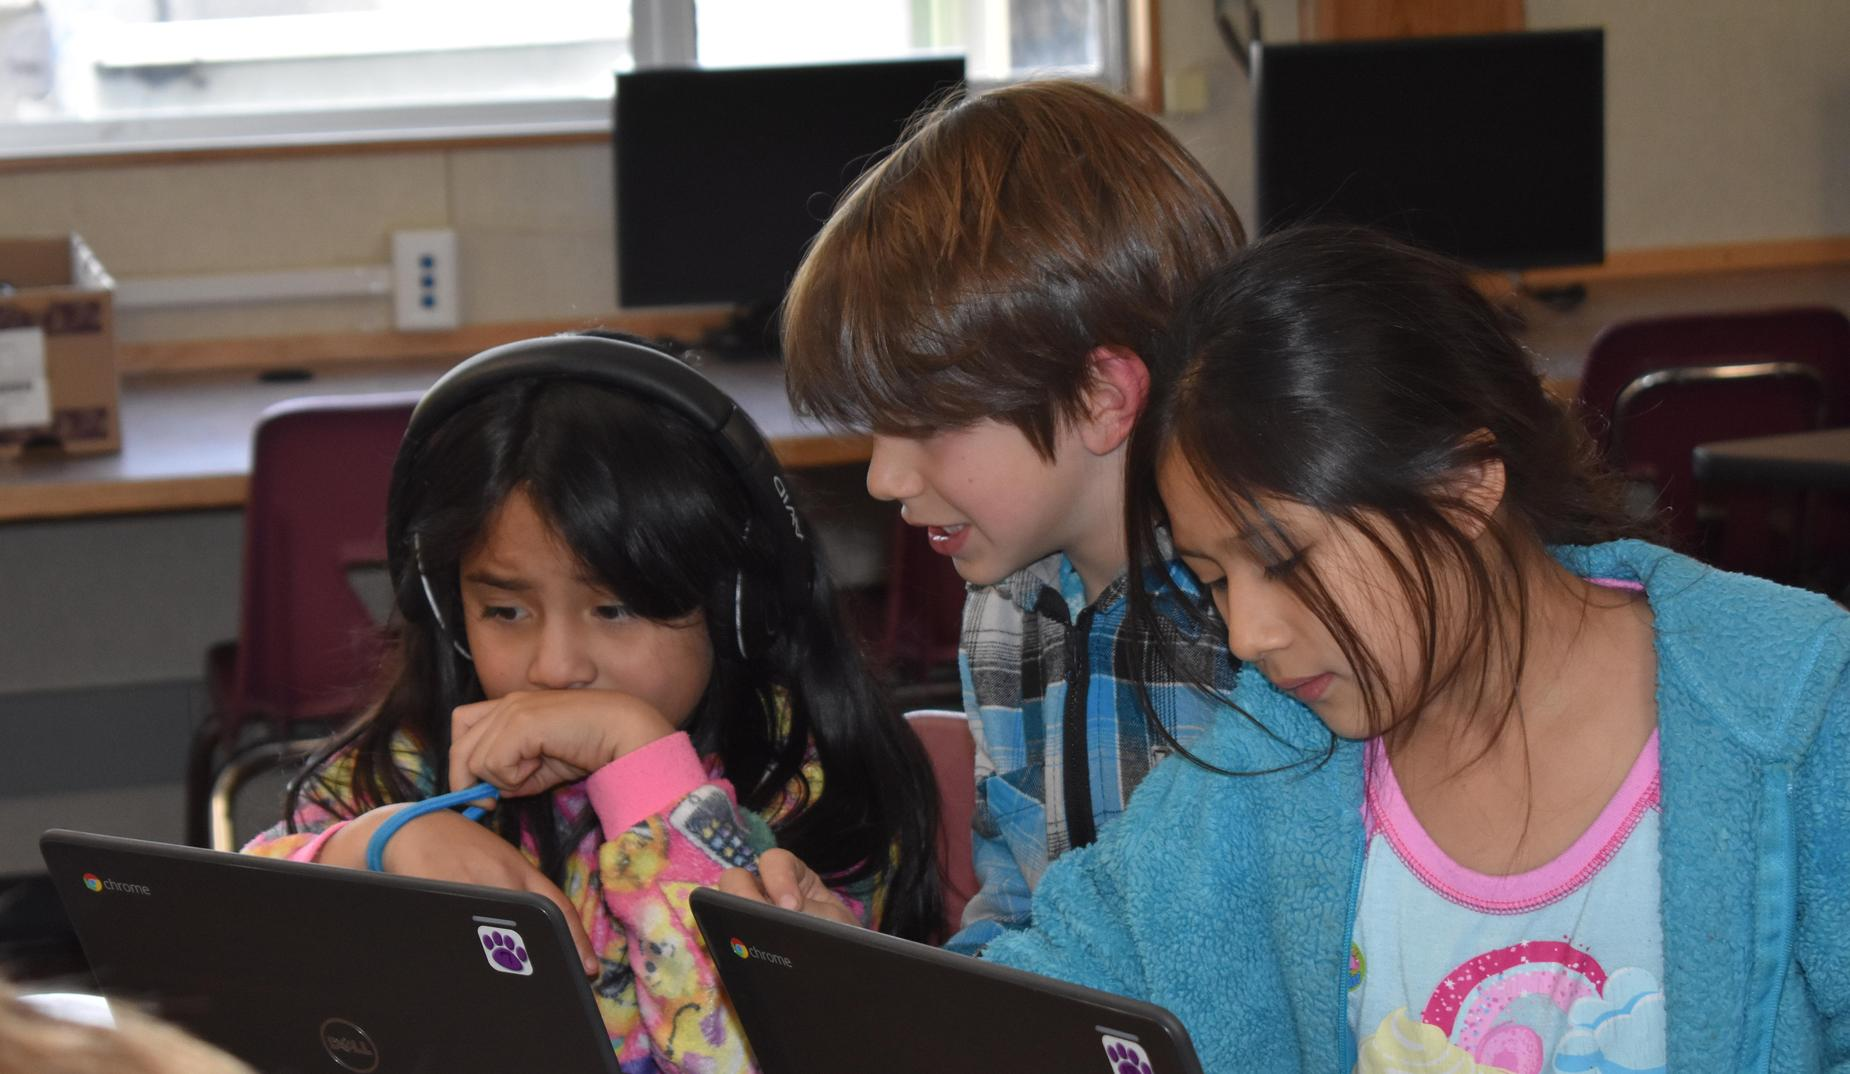 Collaborating during Hour of Code